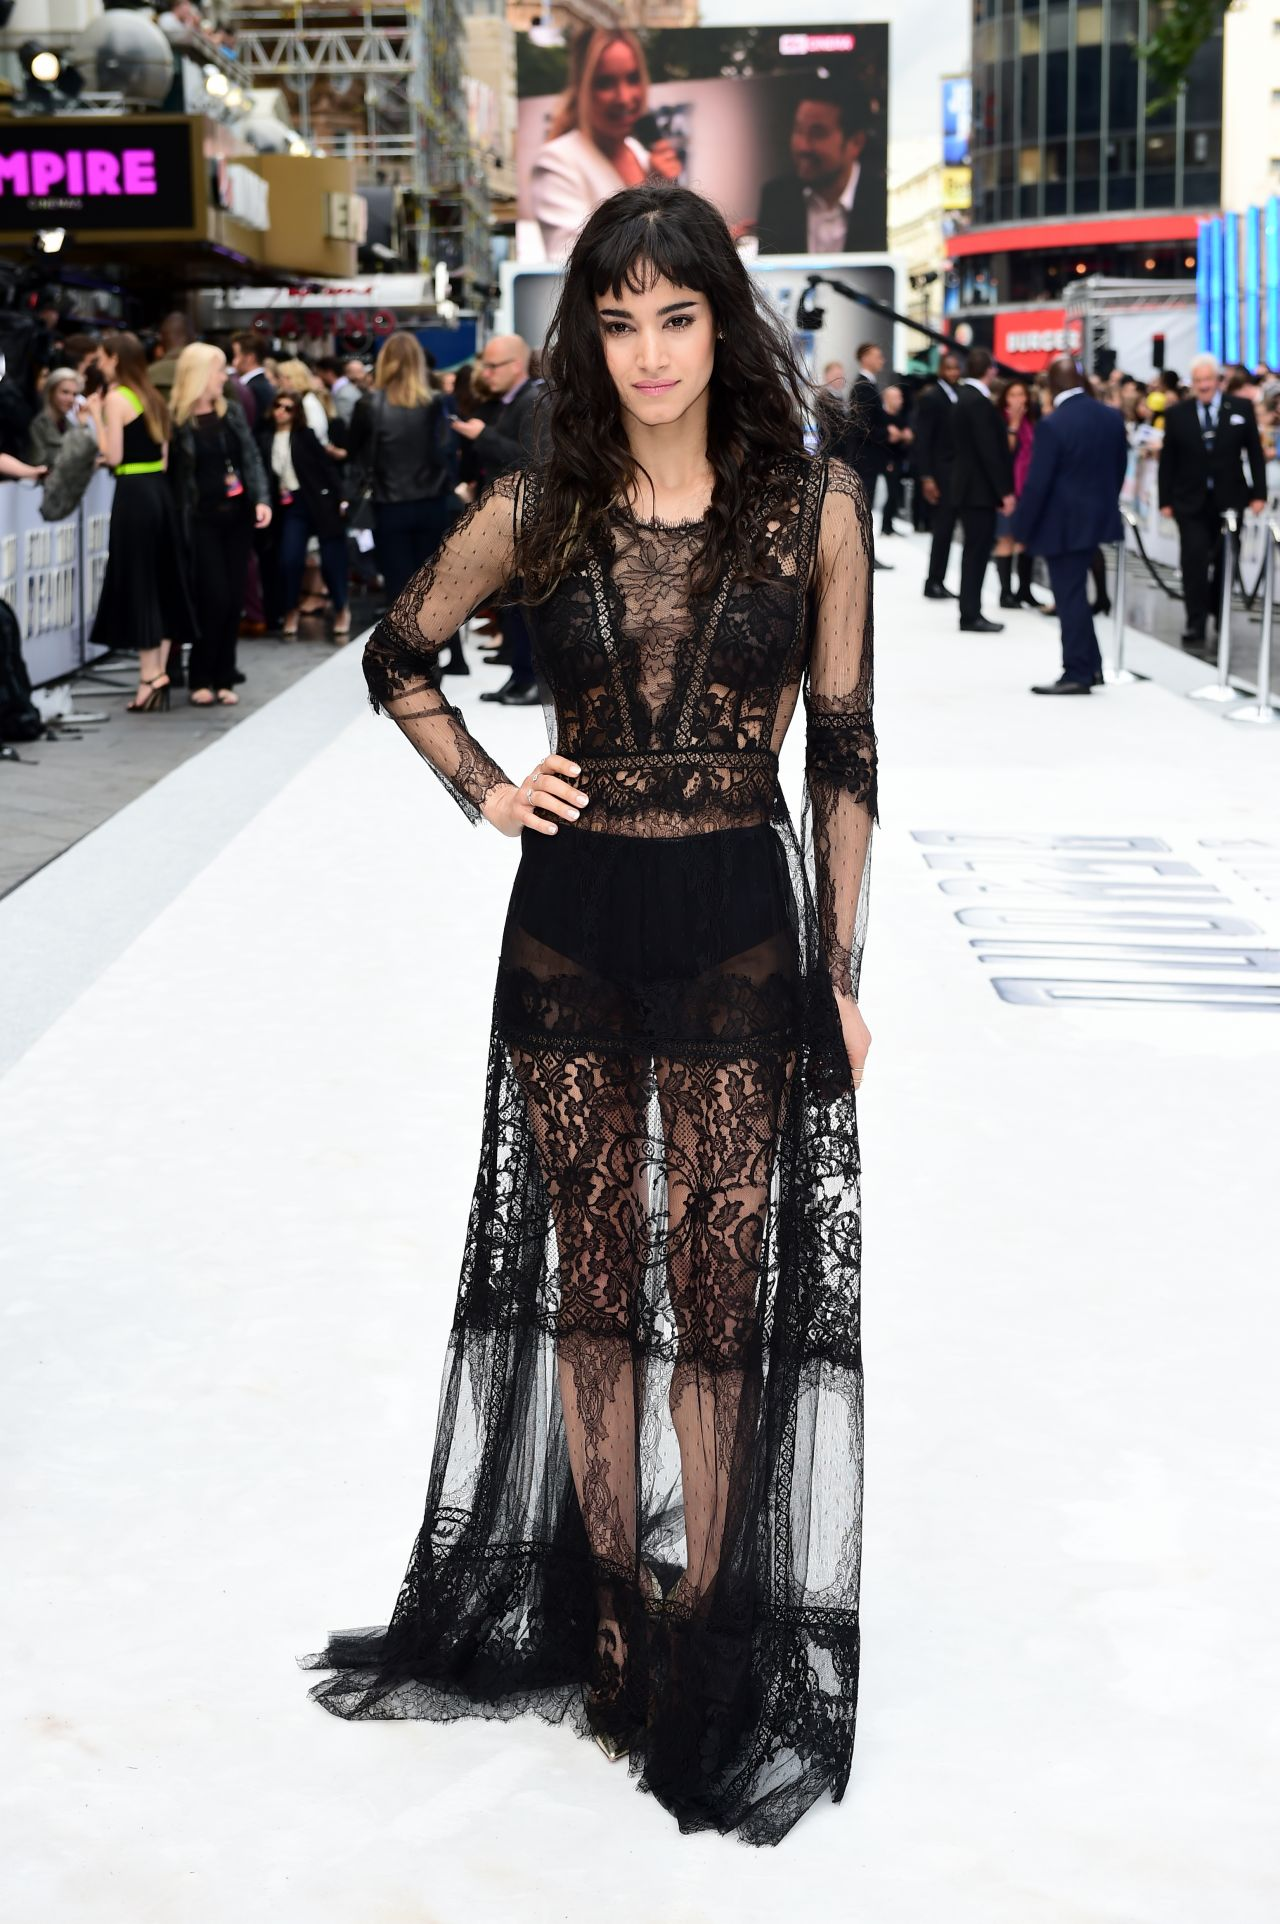 Sofia Boutella photo #729584